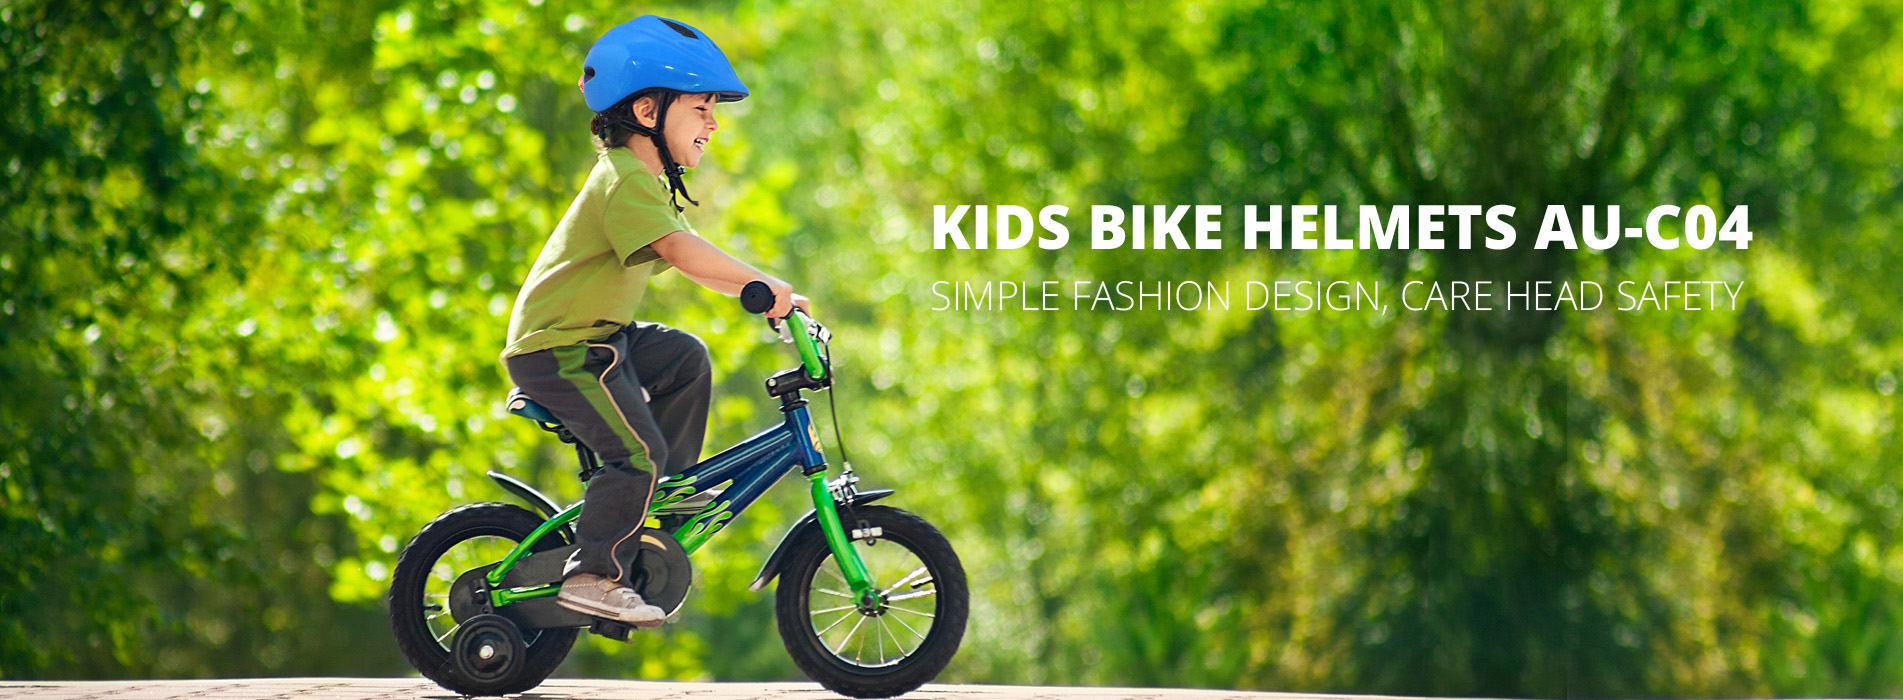 Kids bike helmets c04